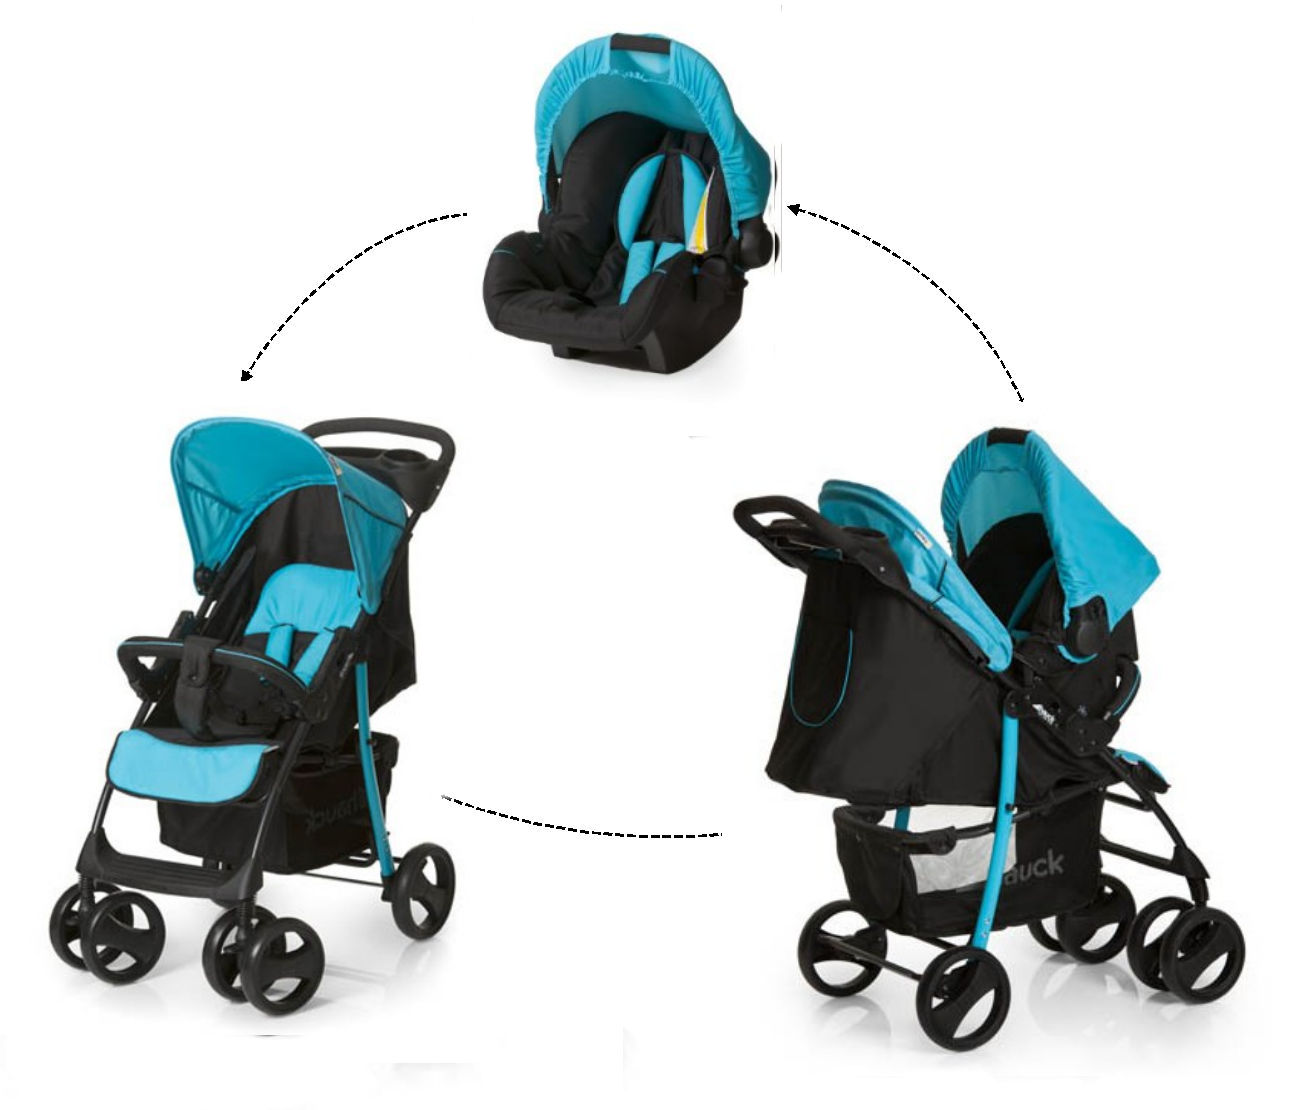 new hauck shopper slx shop n drive travel system. Black Bedroom Furniture Sets. Home Design Ideas